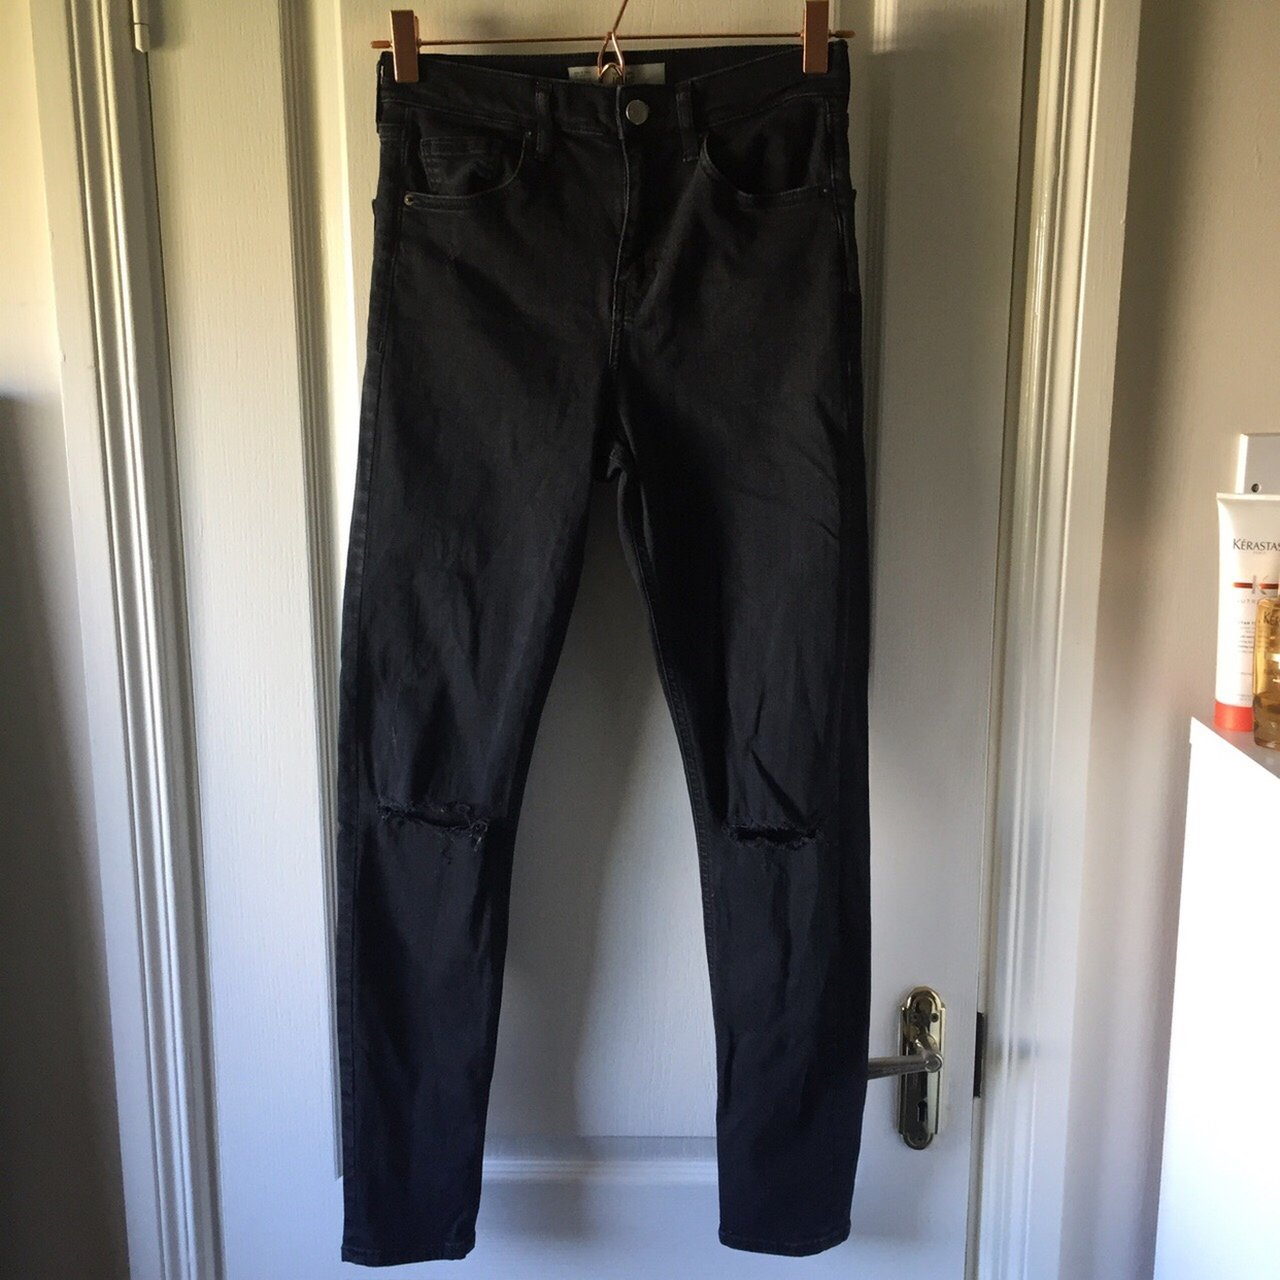 3c6f177e95f @rachienev. 4 months ago. Galway, Ireland. Topshop Jamie jeans. Dark grey  with ripped knees.